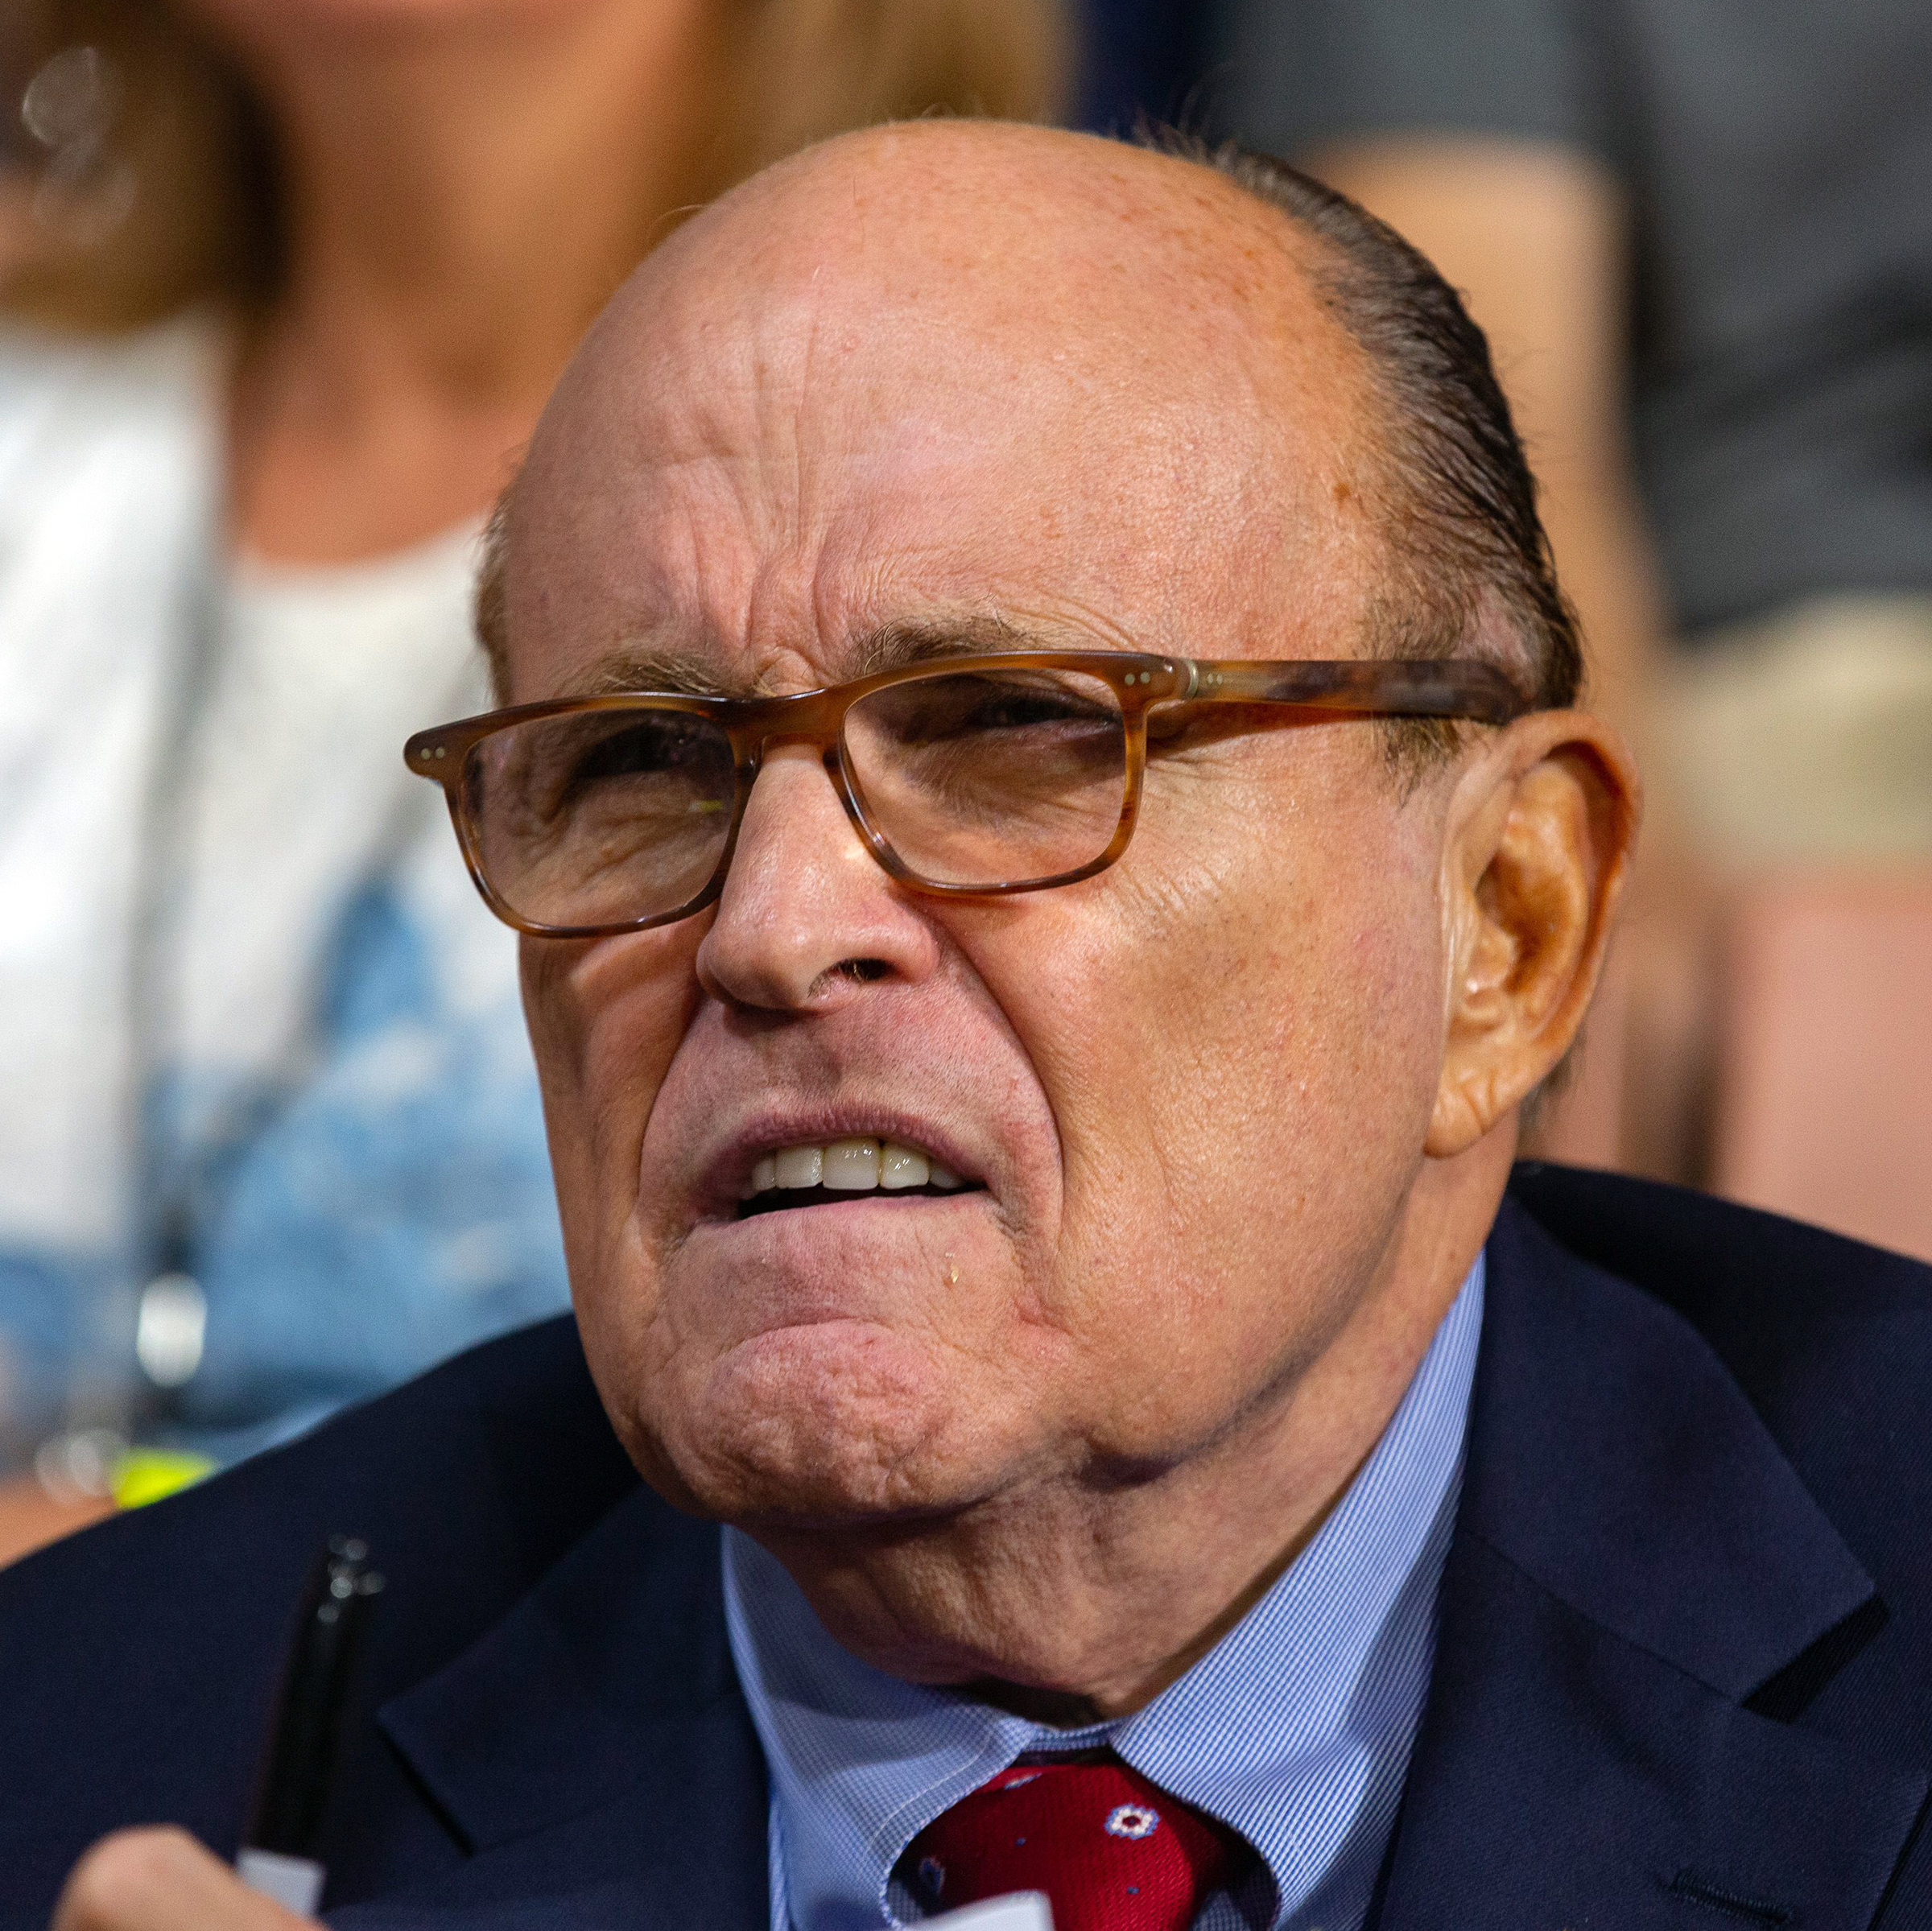 Former New York City Mayor Rudy GiulianiUS President Donald Trump, US Presidential Election Campaigning, Manchester, USA - 15 Aug 2019